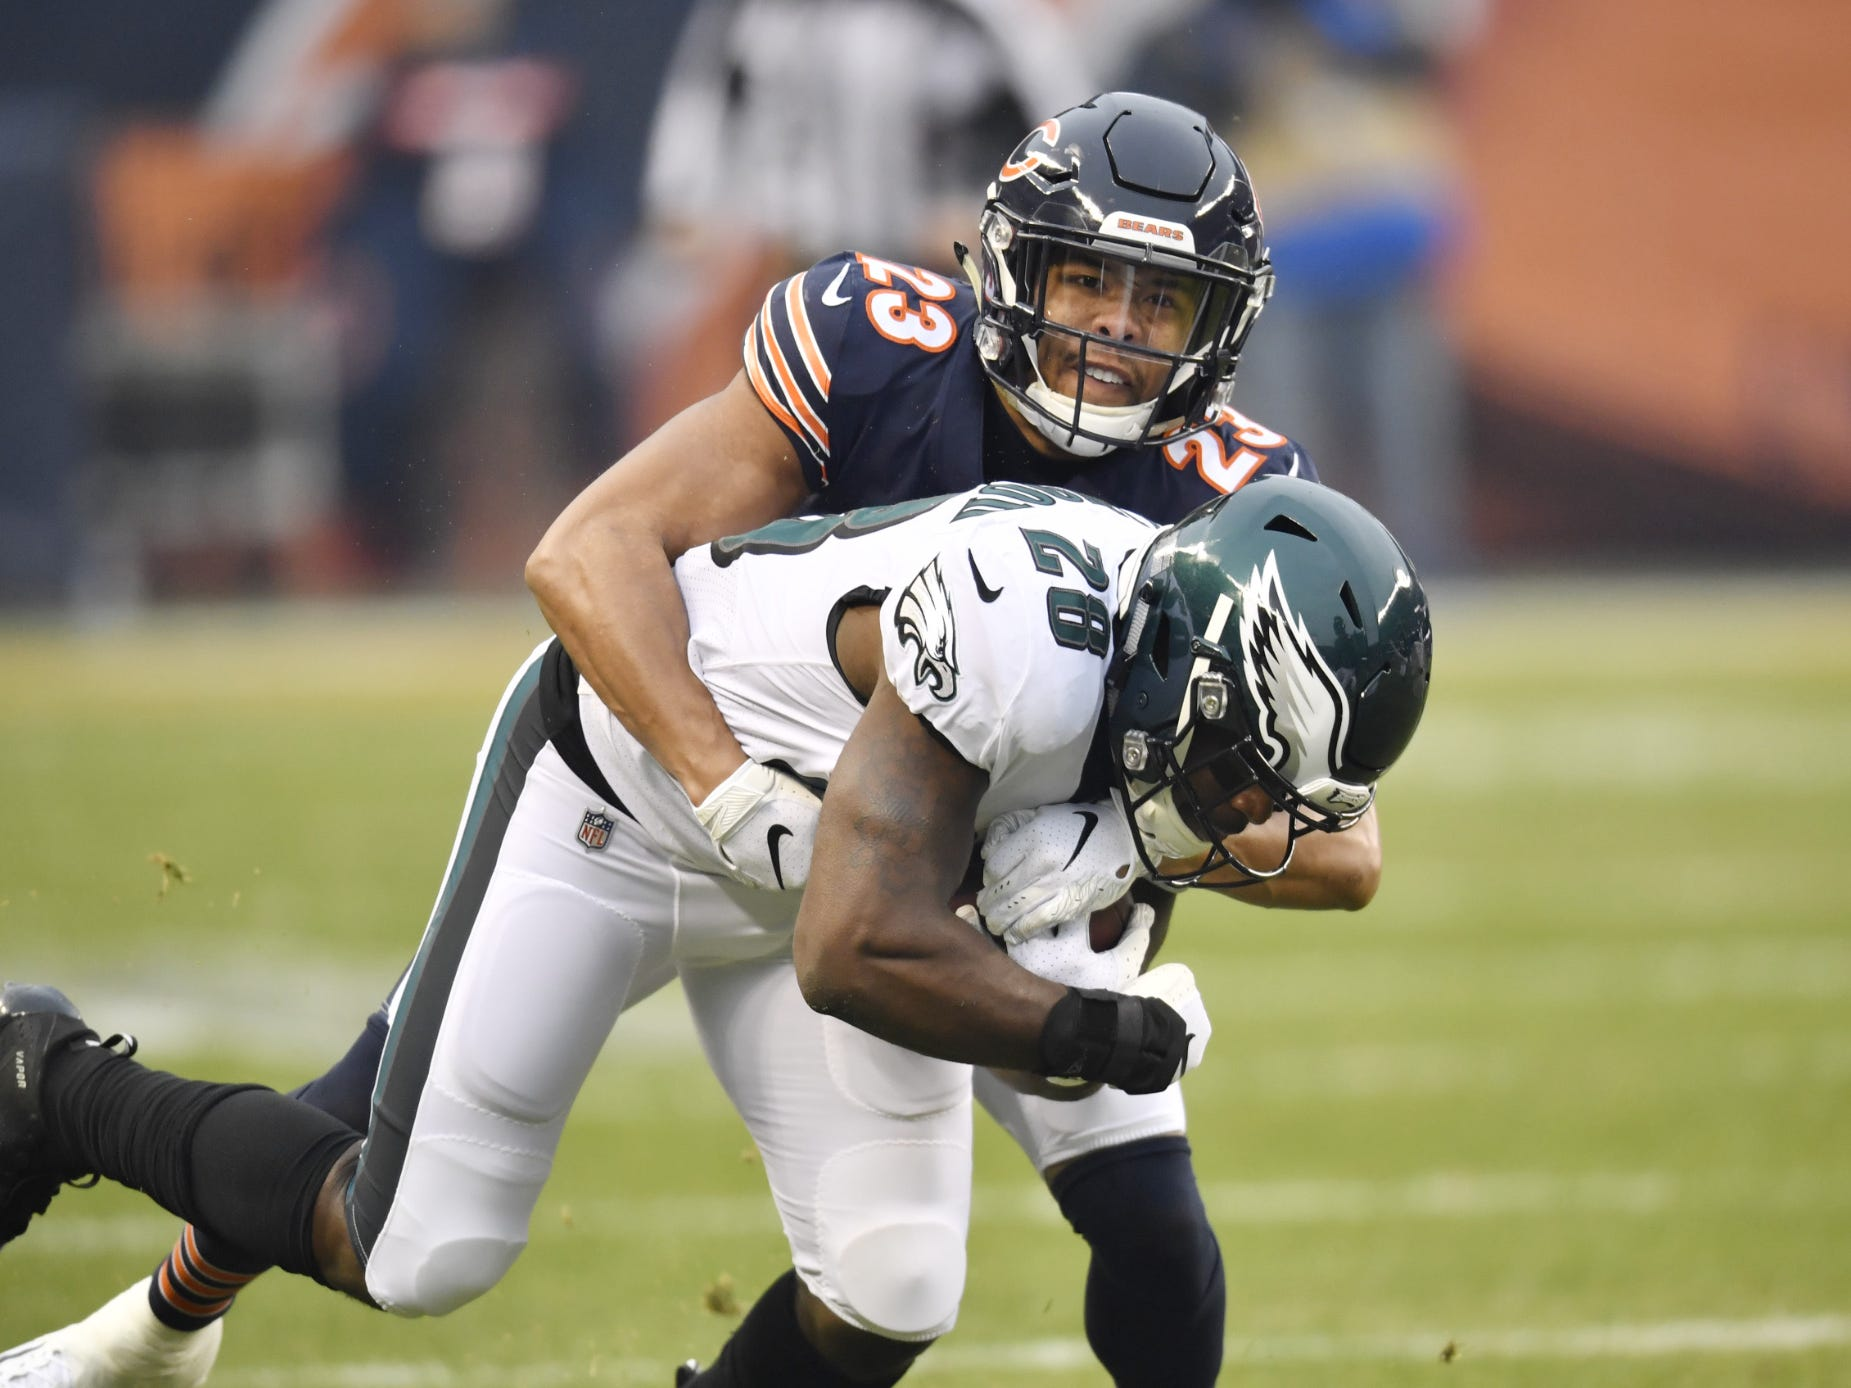 Philadelphia Eagles running back Wendell Smallwood (28) is tackled by Chicago Bears cornerback Kyle Fuller (23) in the first quarter a NFC Wild Card playoff football game at Soldier Field.